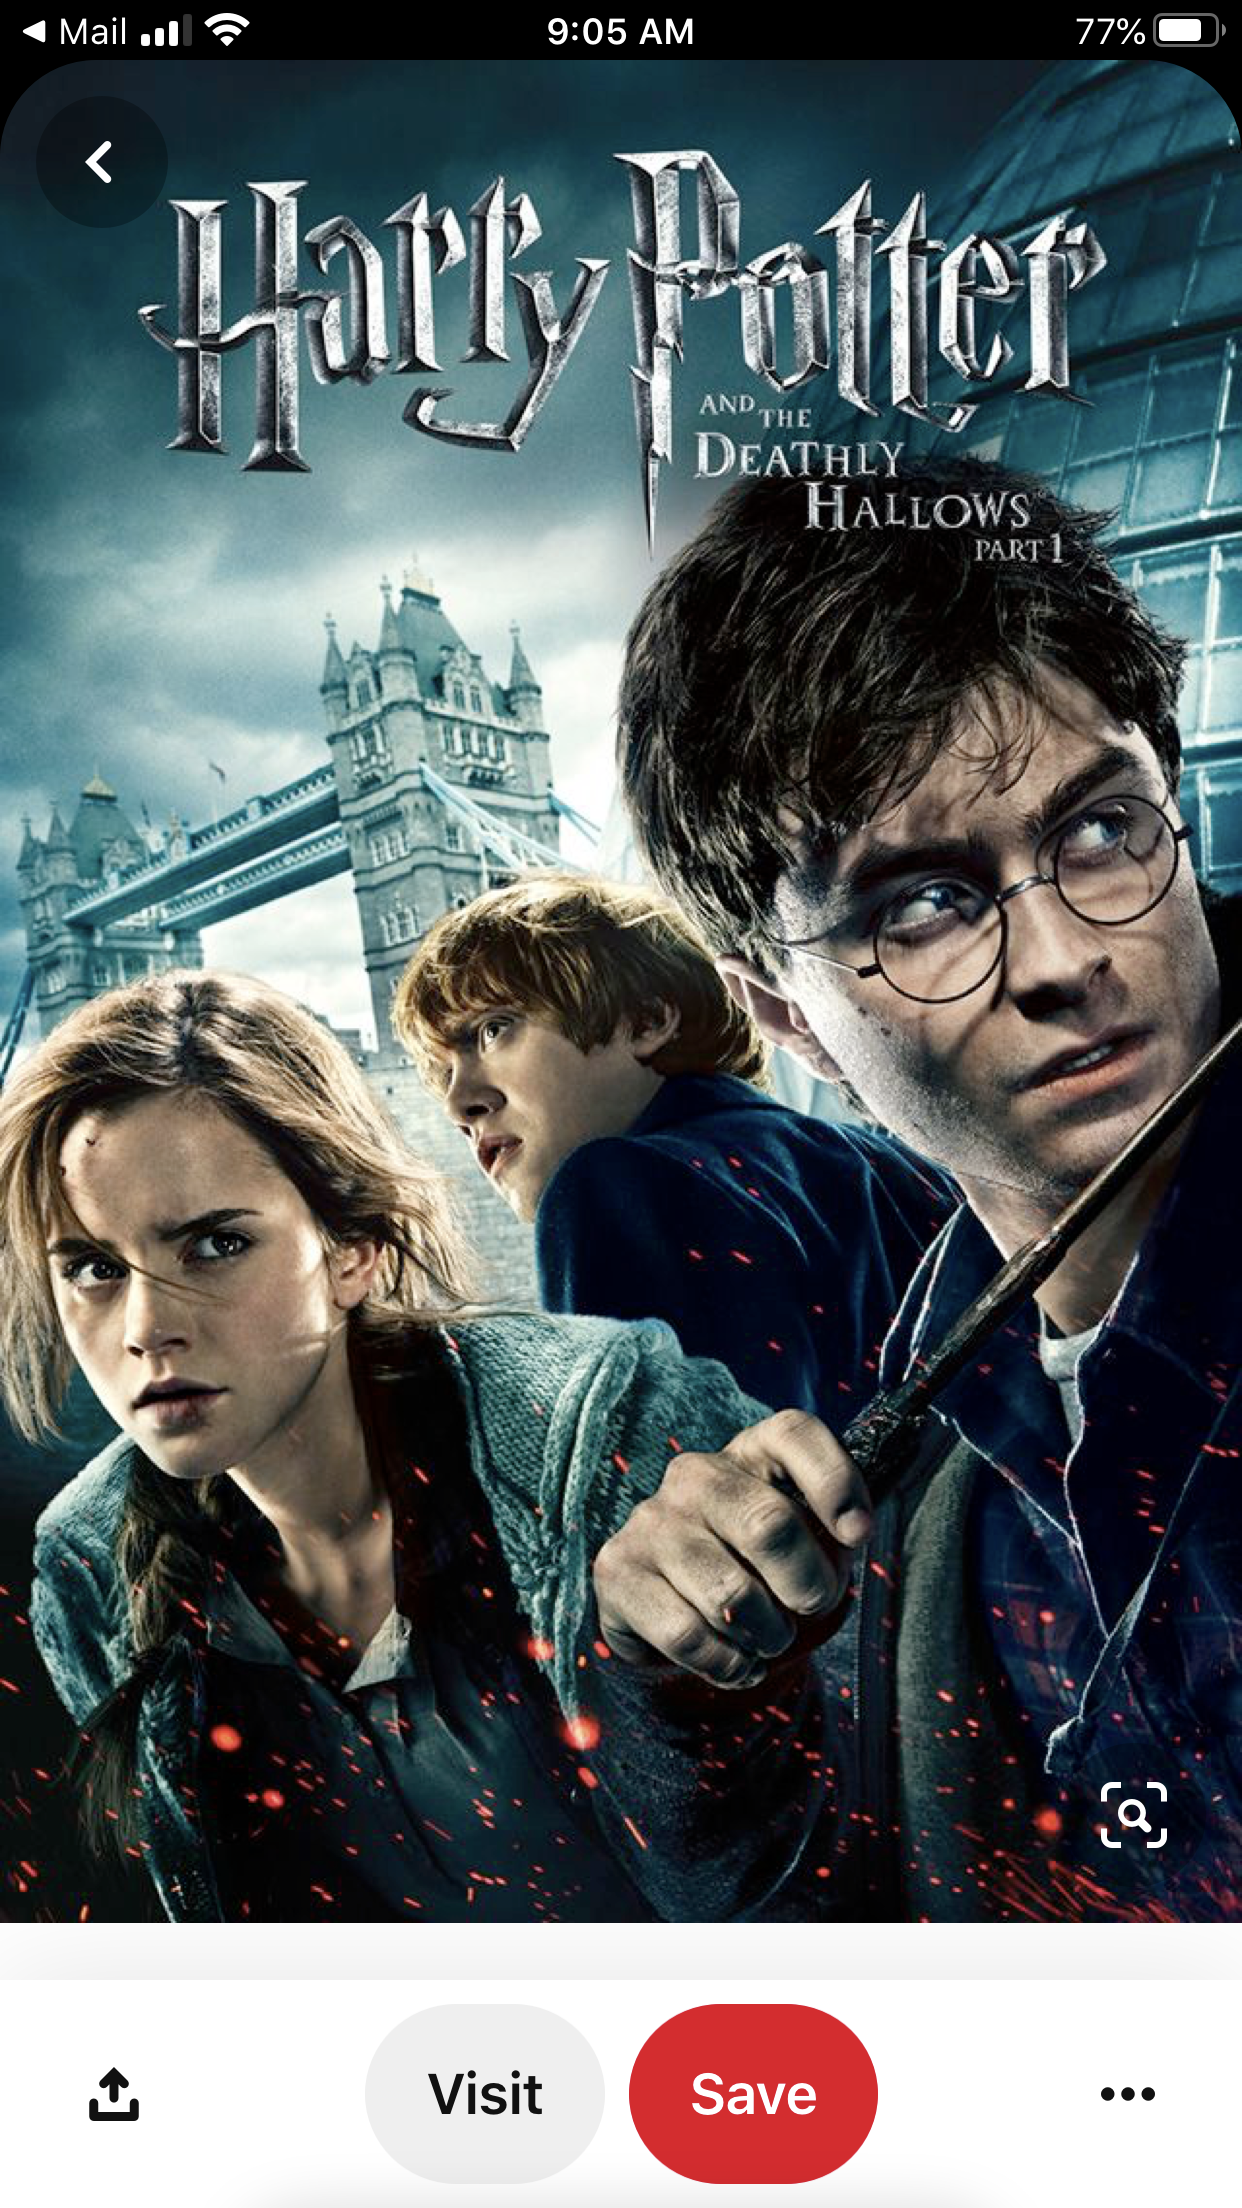 Pin By Doris Bailey On Harry Potter Deathly Hallows Part 1 Harry Potter Movies Deathly Hallows Part 2